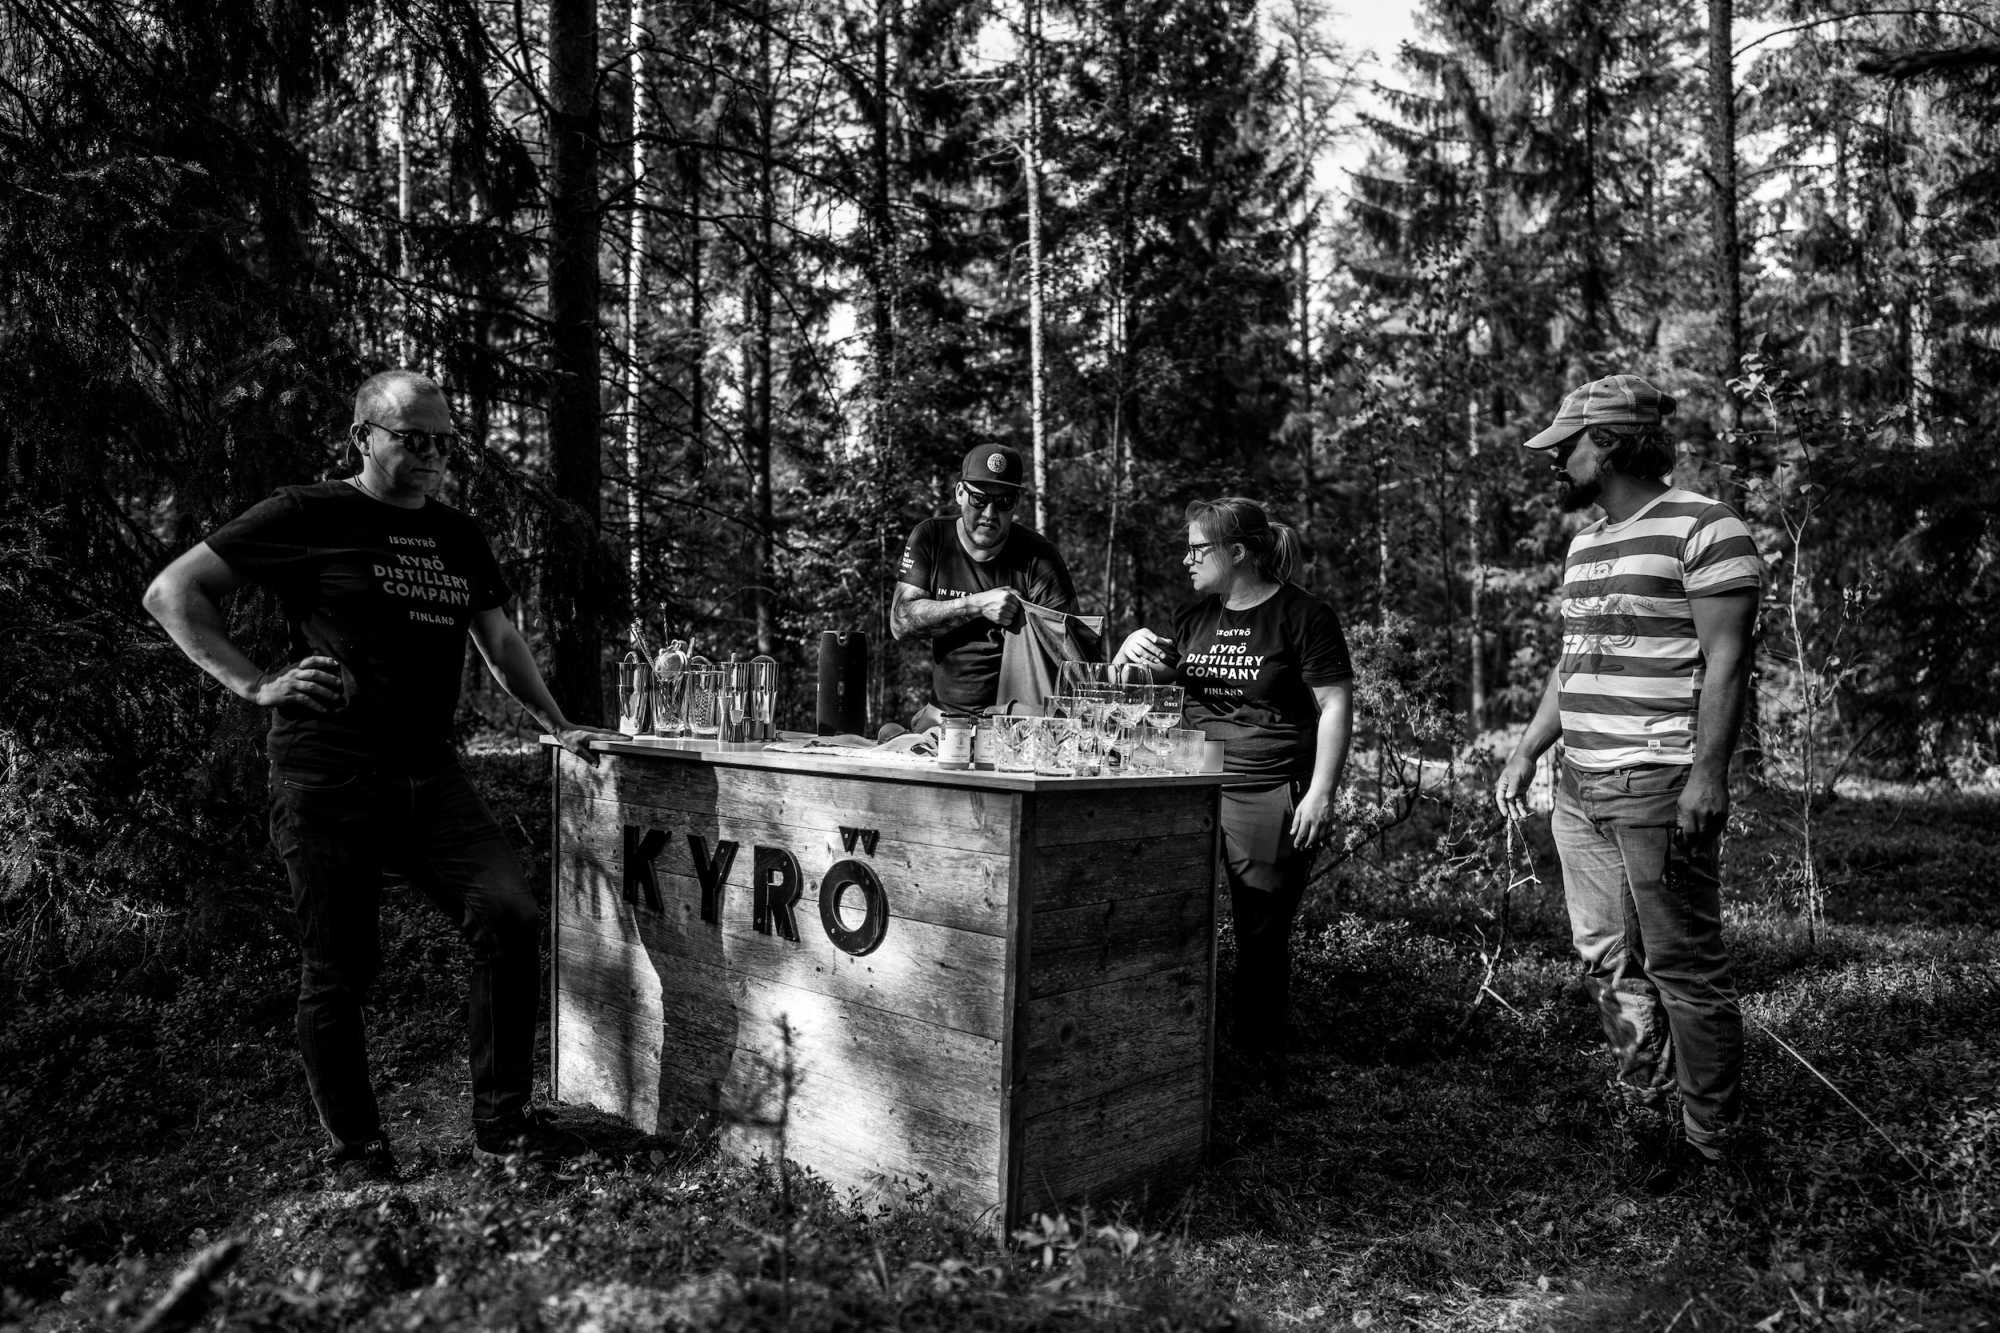 People standing in the middle of the forest next to a bar set-up with Kyrö bottles and cocktails glasses.